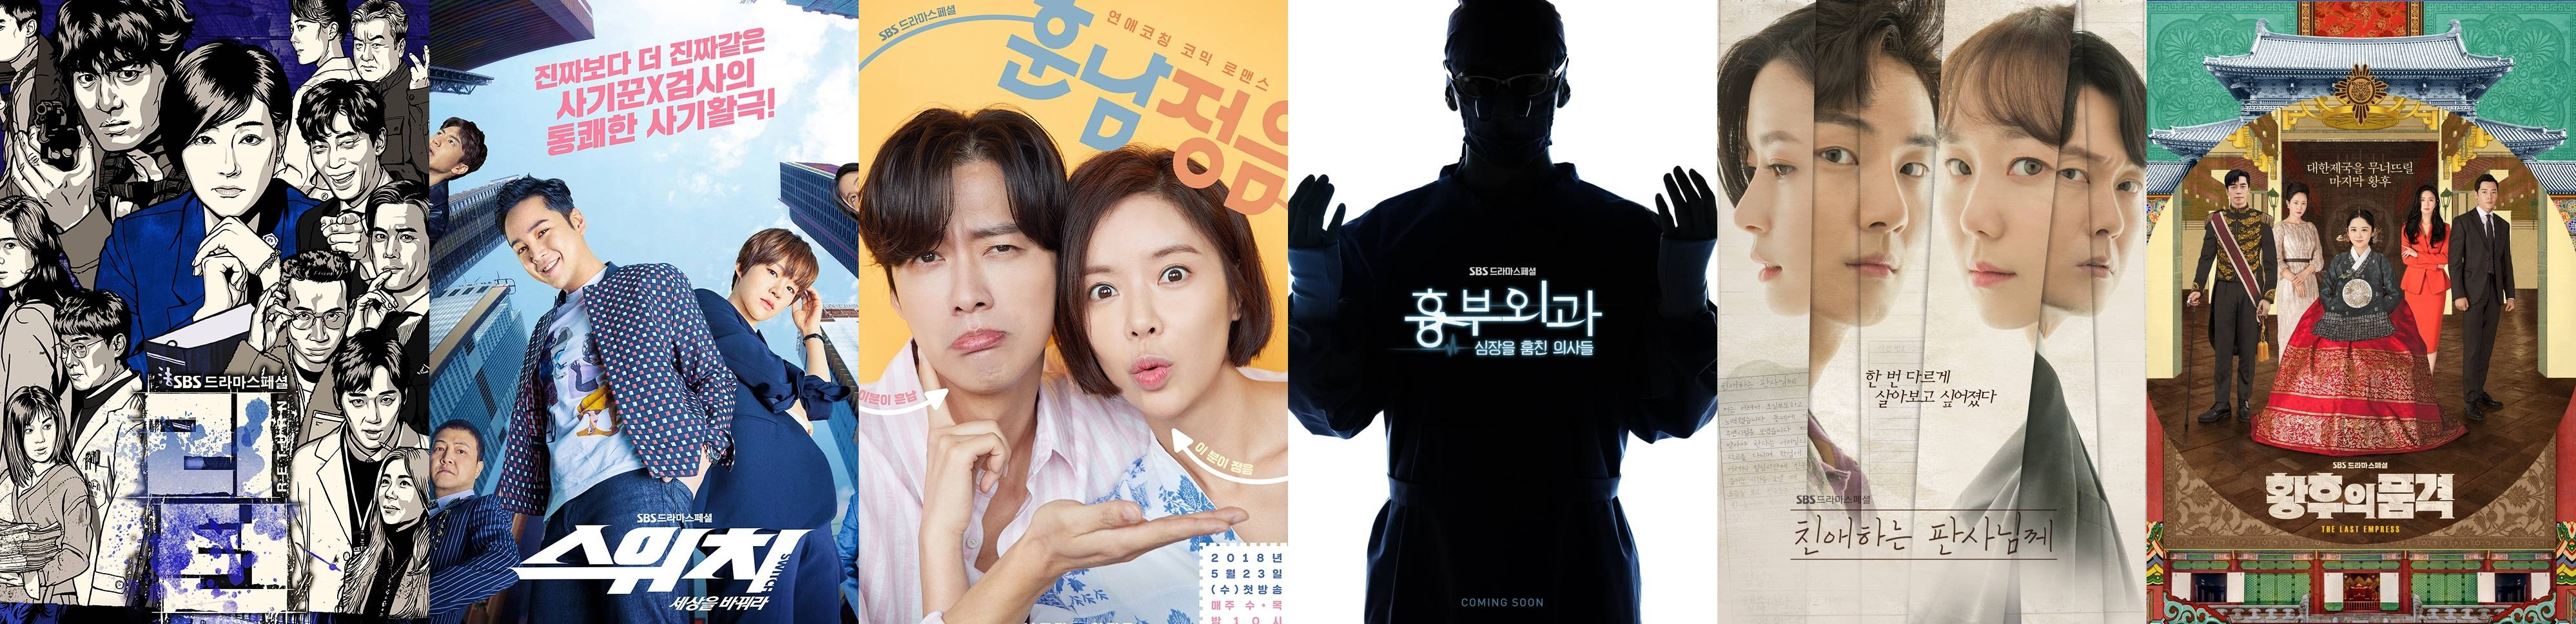 Video] SBS Drama Awards 2018 Trailer and Nominess